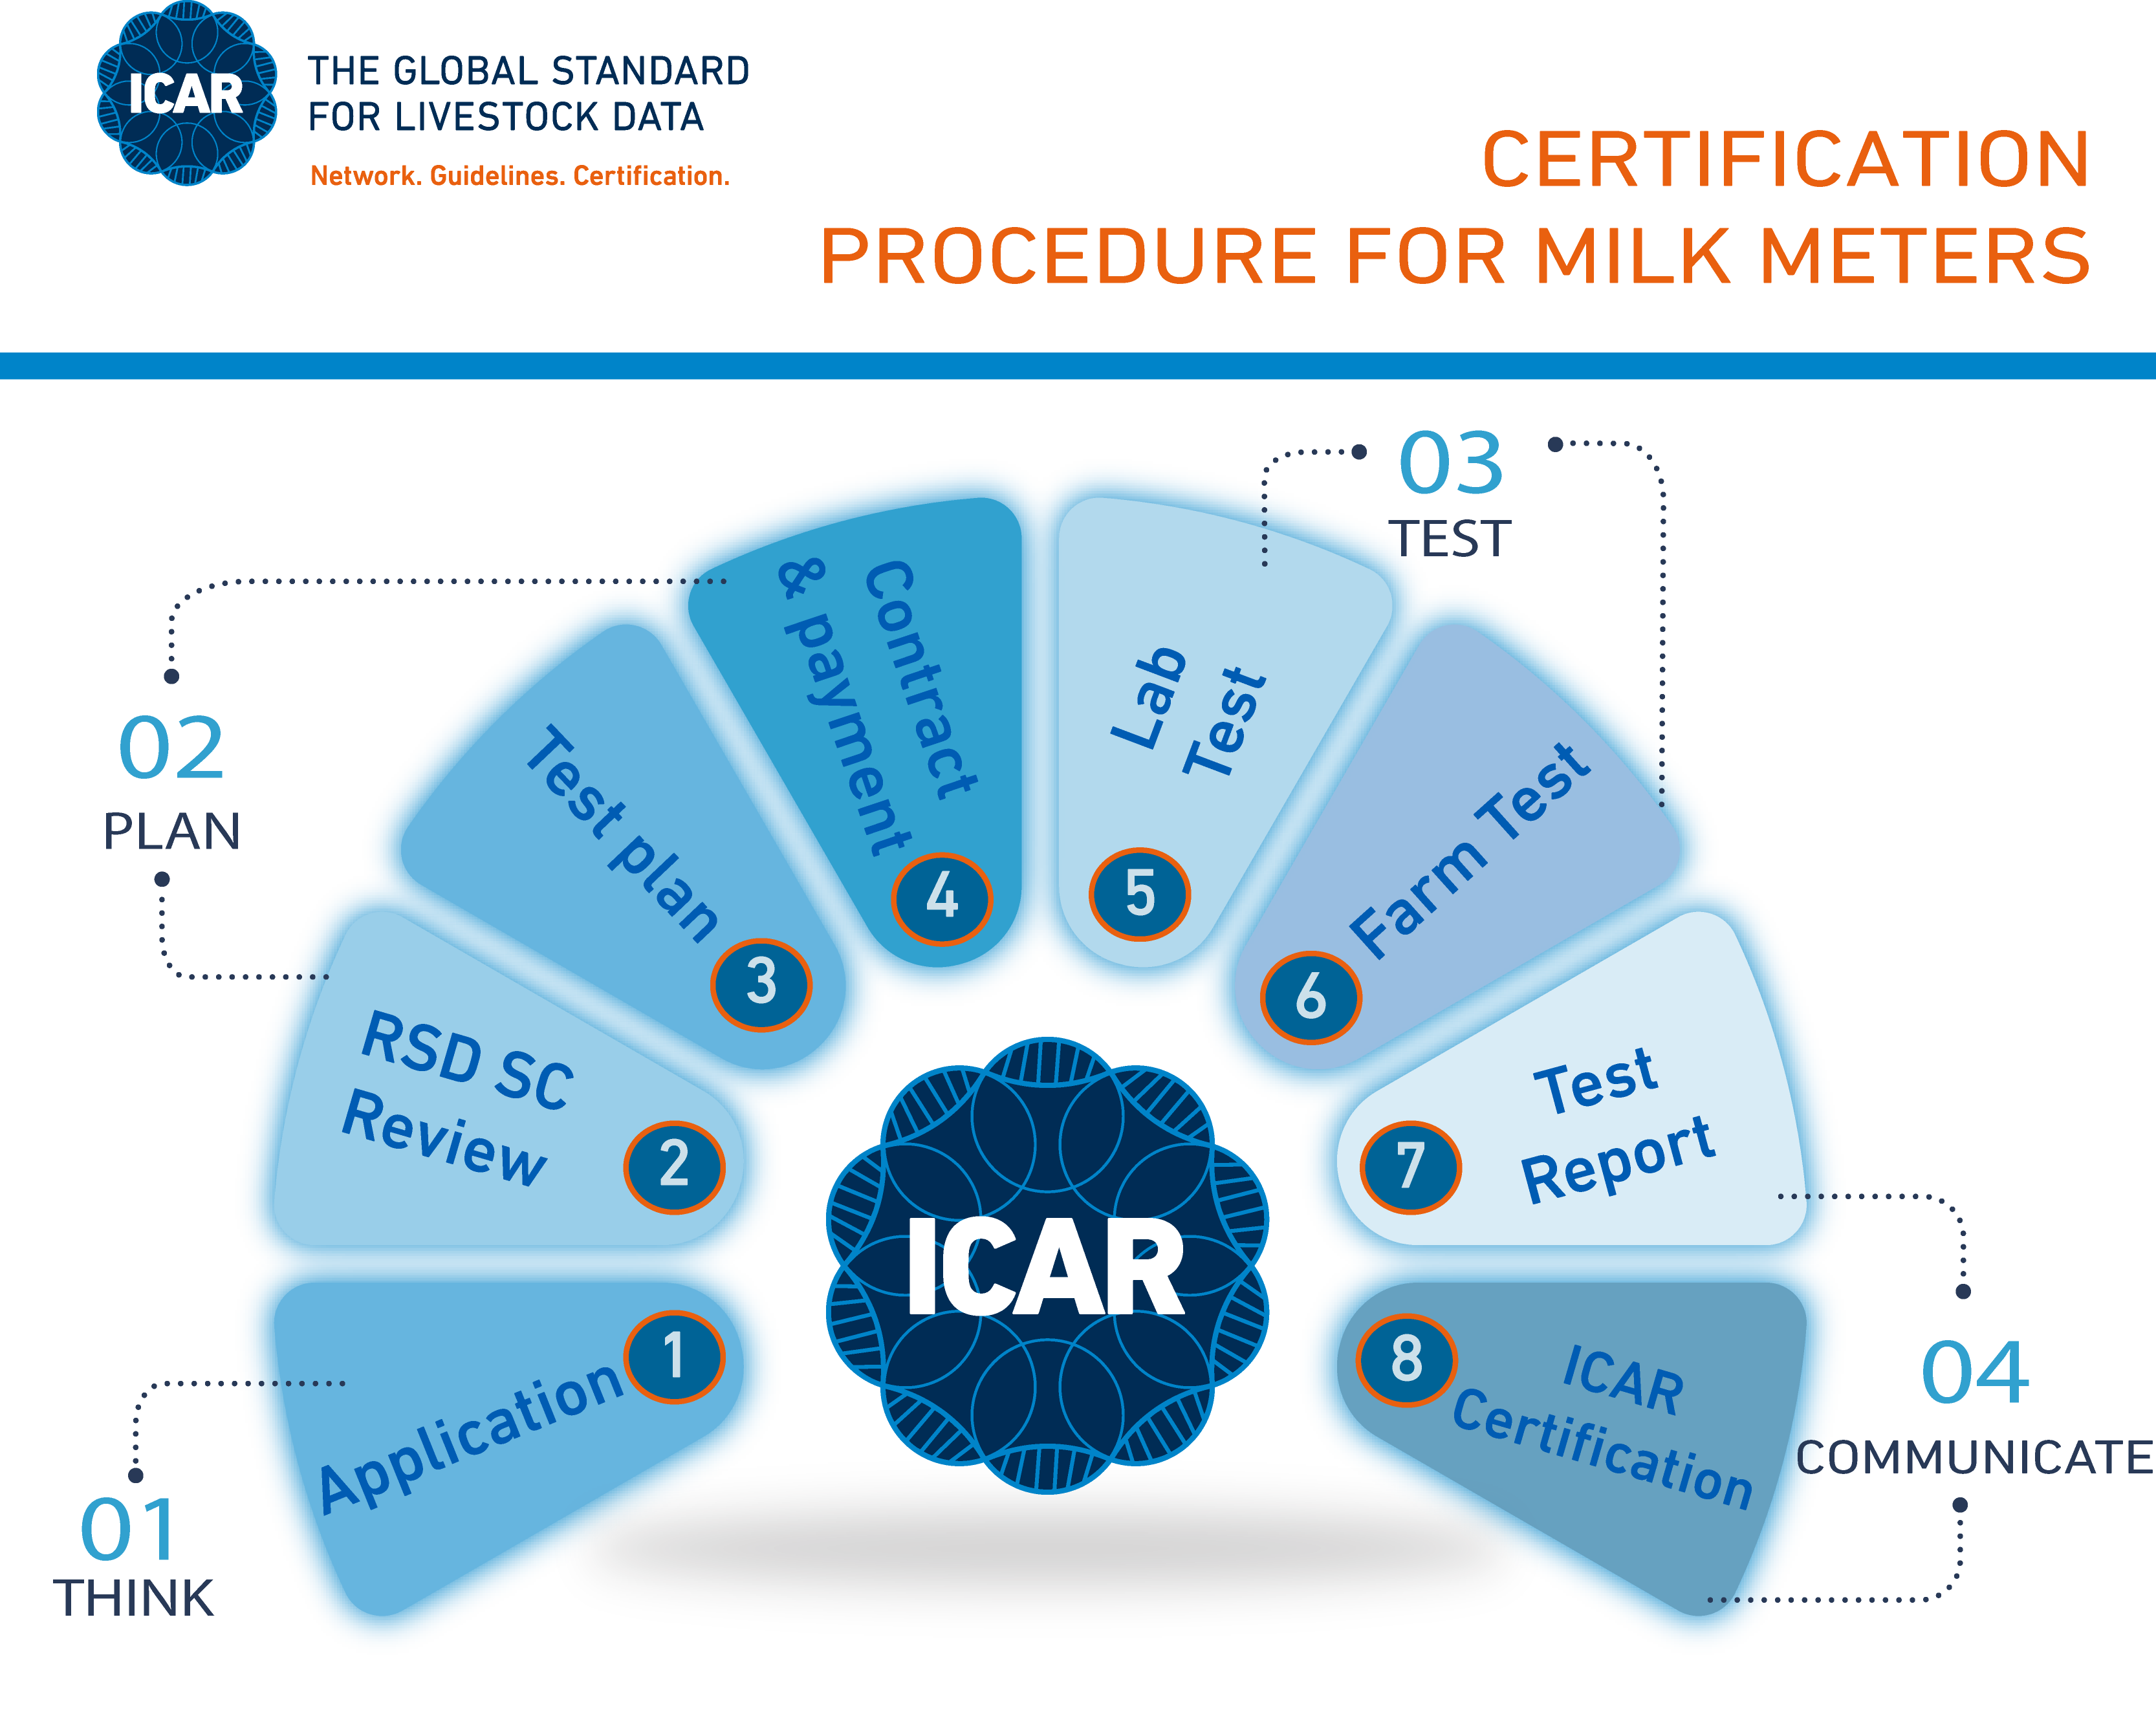 Steps to submit a device for icar testing icar the devices used for the purposes of official milk recording must be icar certified based on icar guidelines section 11 which details the rules 1betcityfo Gallery